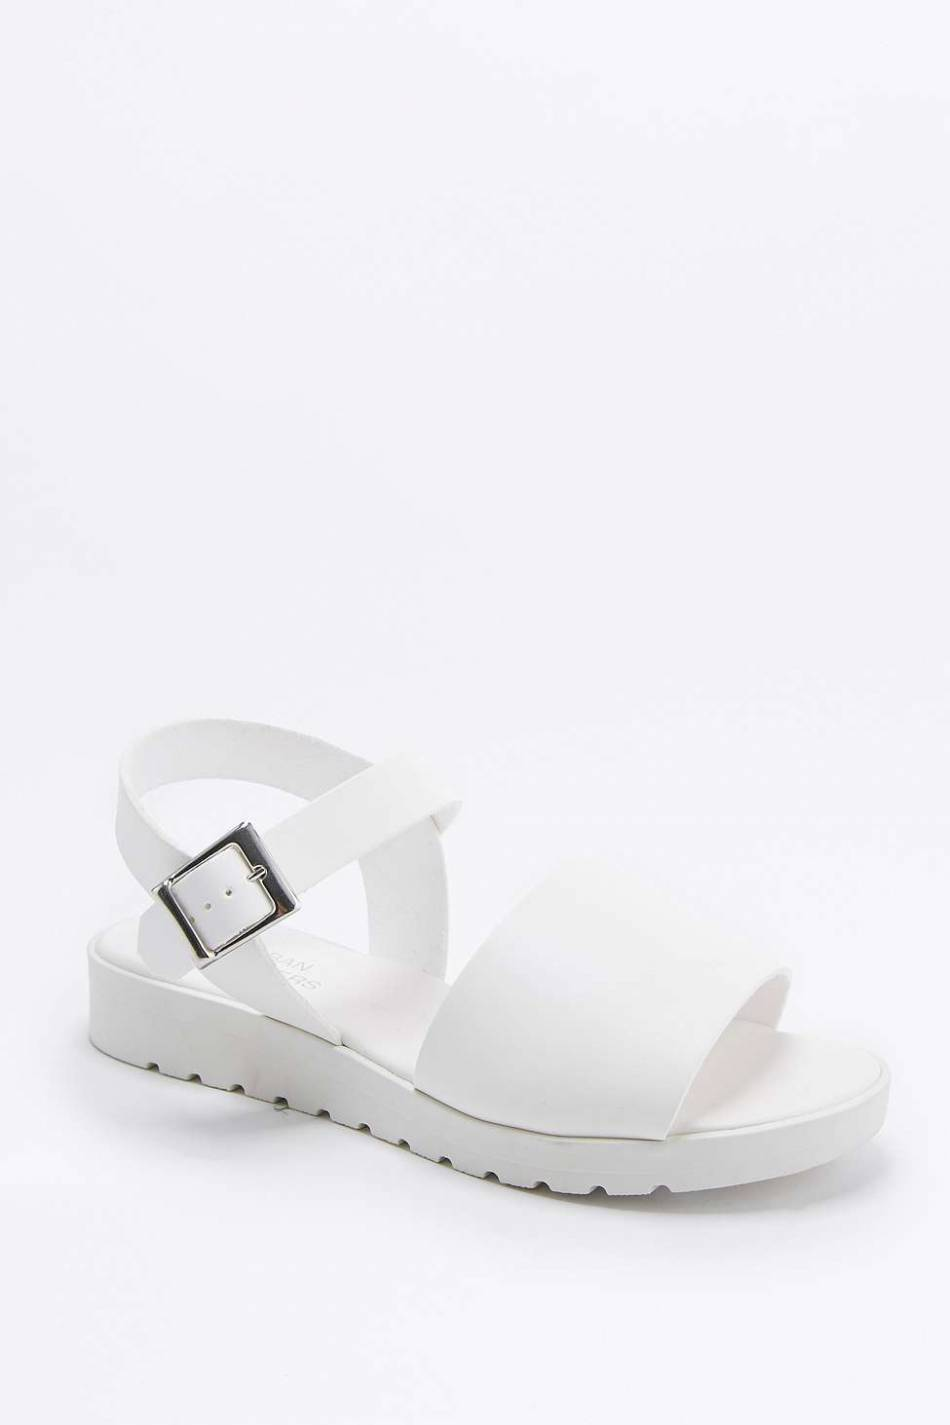 Chaussures blanches, Urban Outfitters, 52\u20ac.